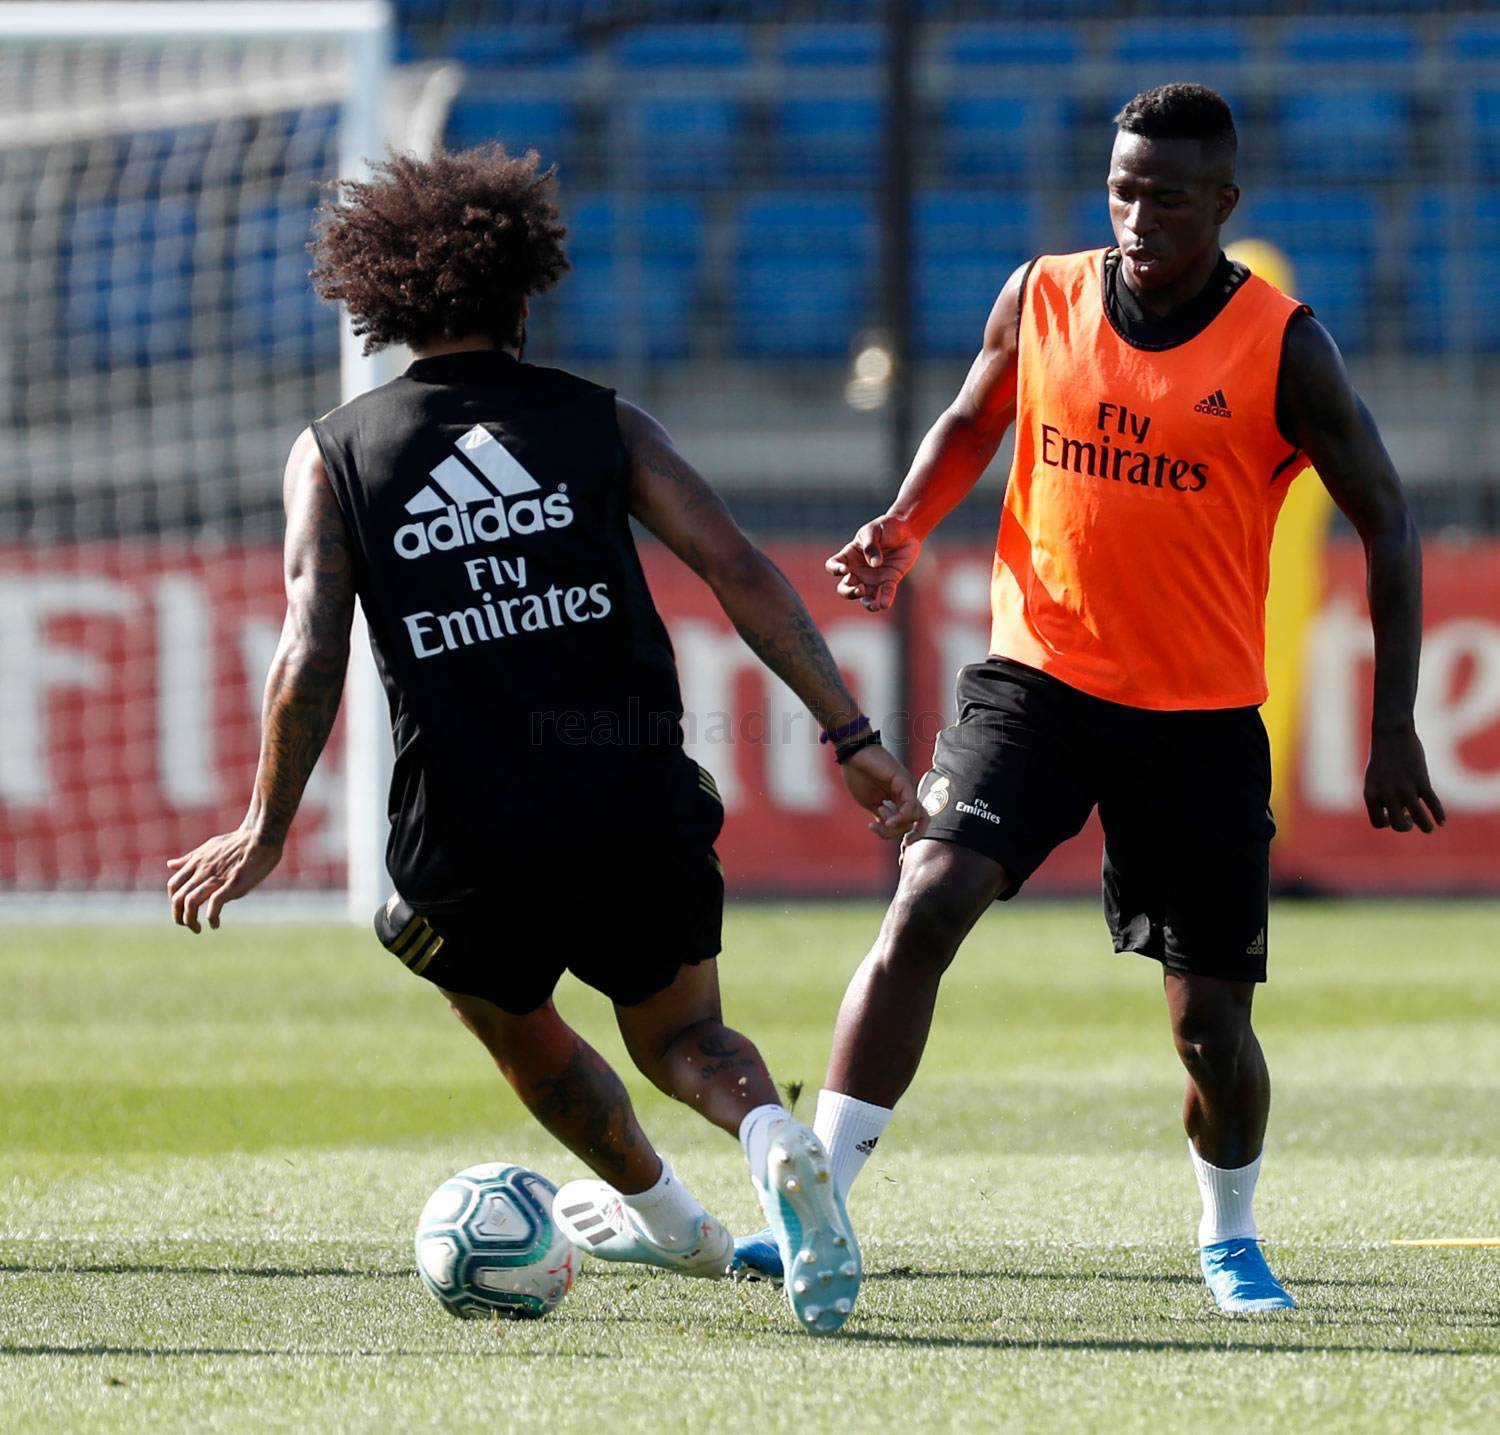 Real Madrid - Entrenamiento del Real Madrid  - 13-08-2019